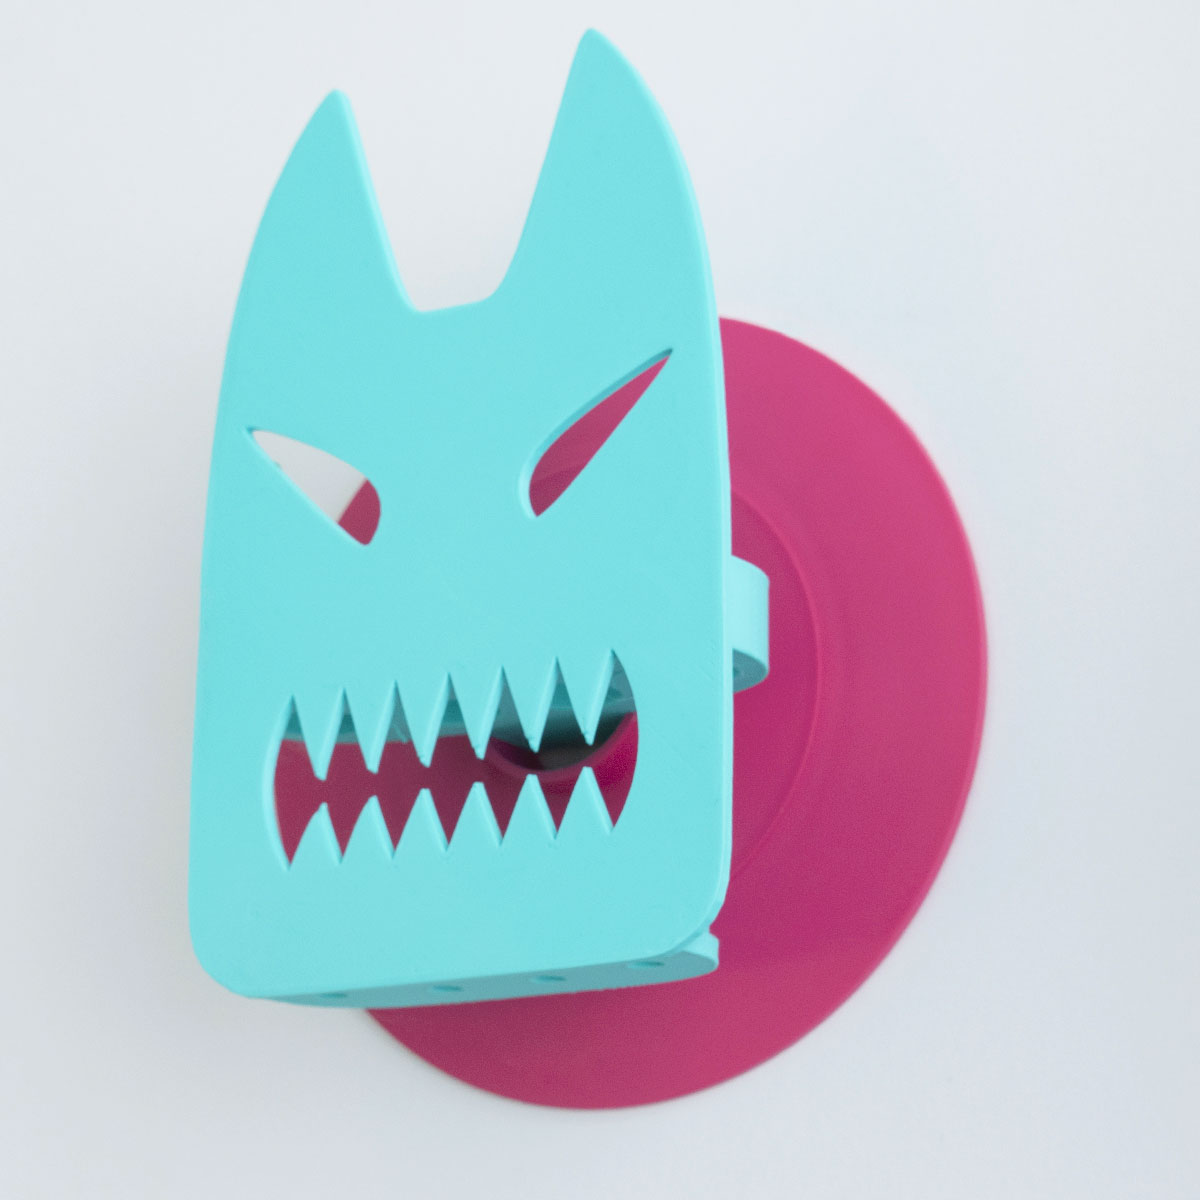 Toothy_01_02